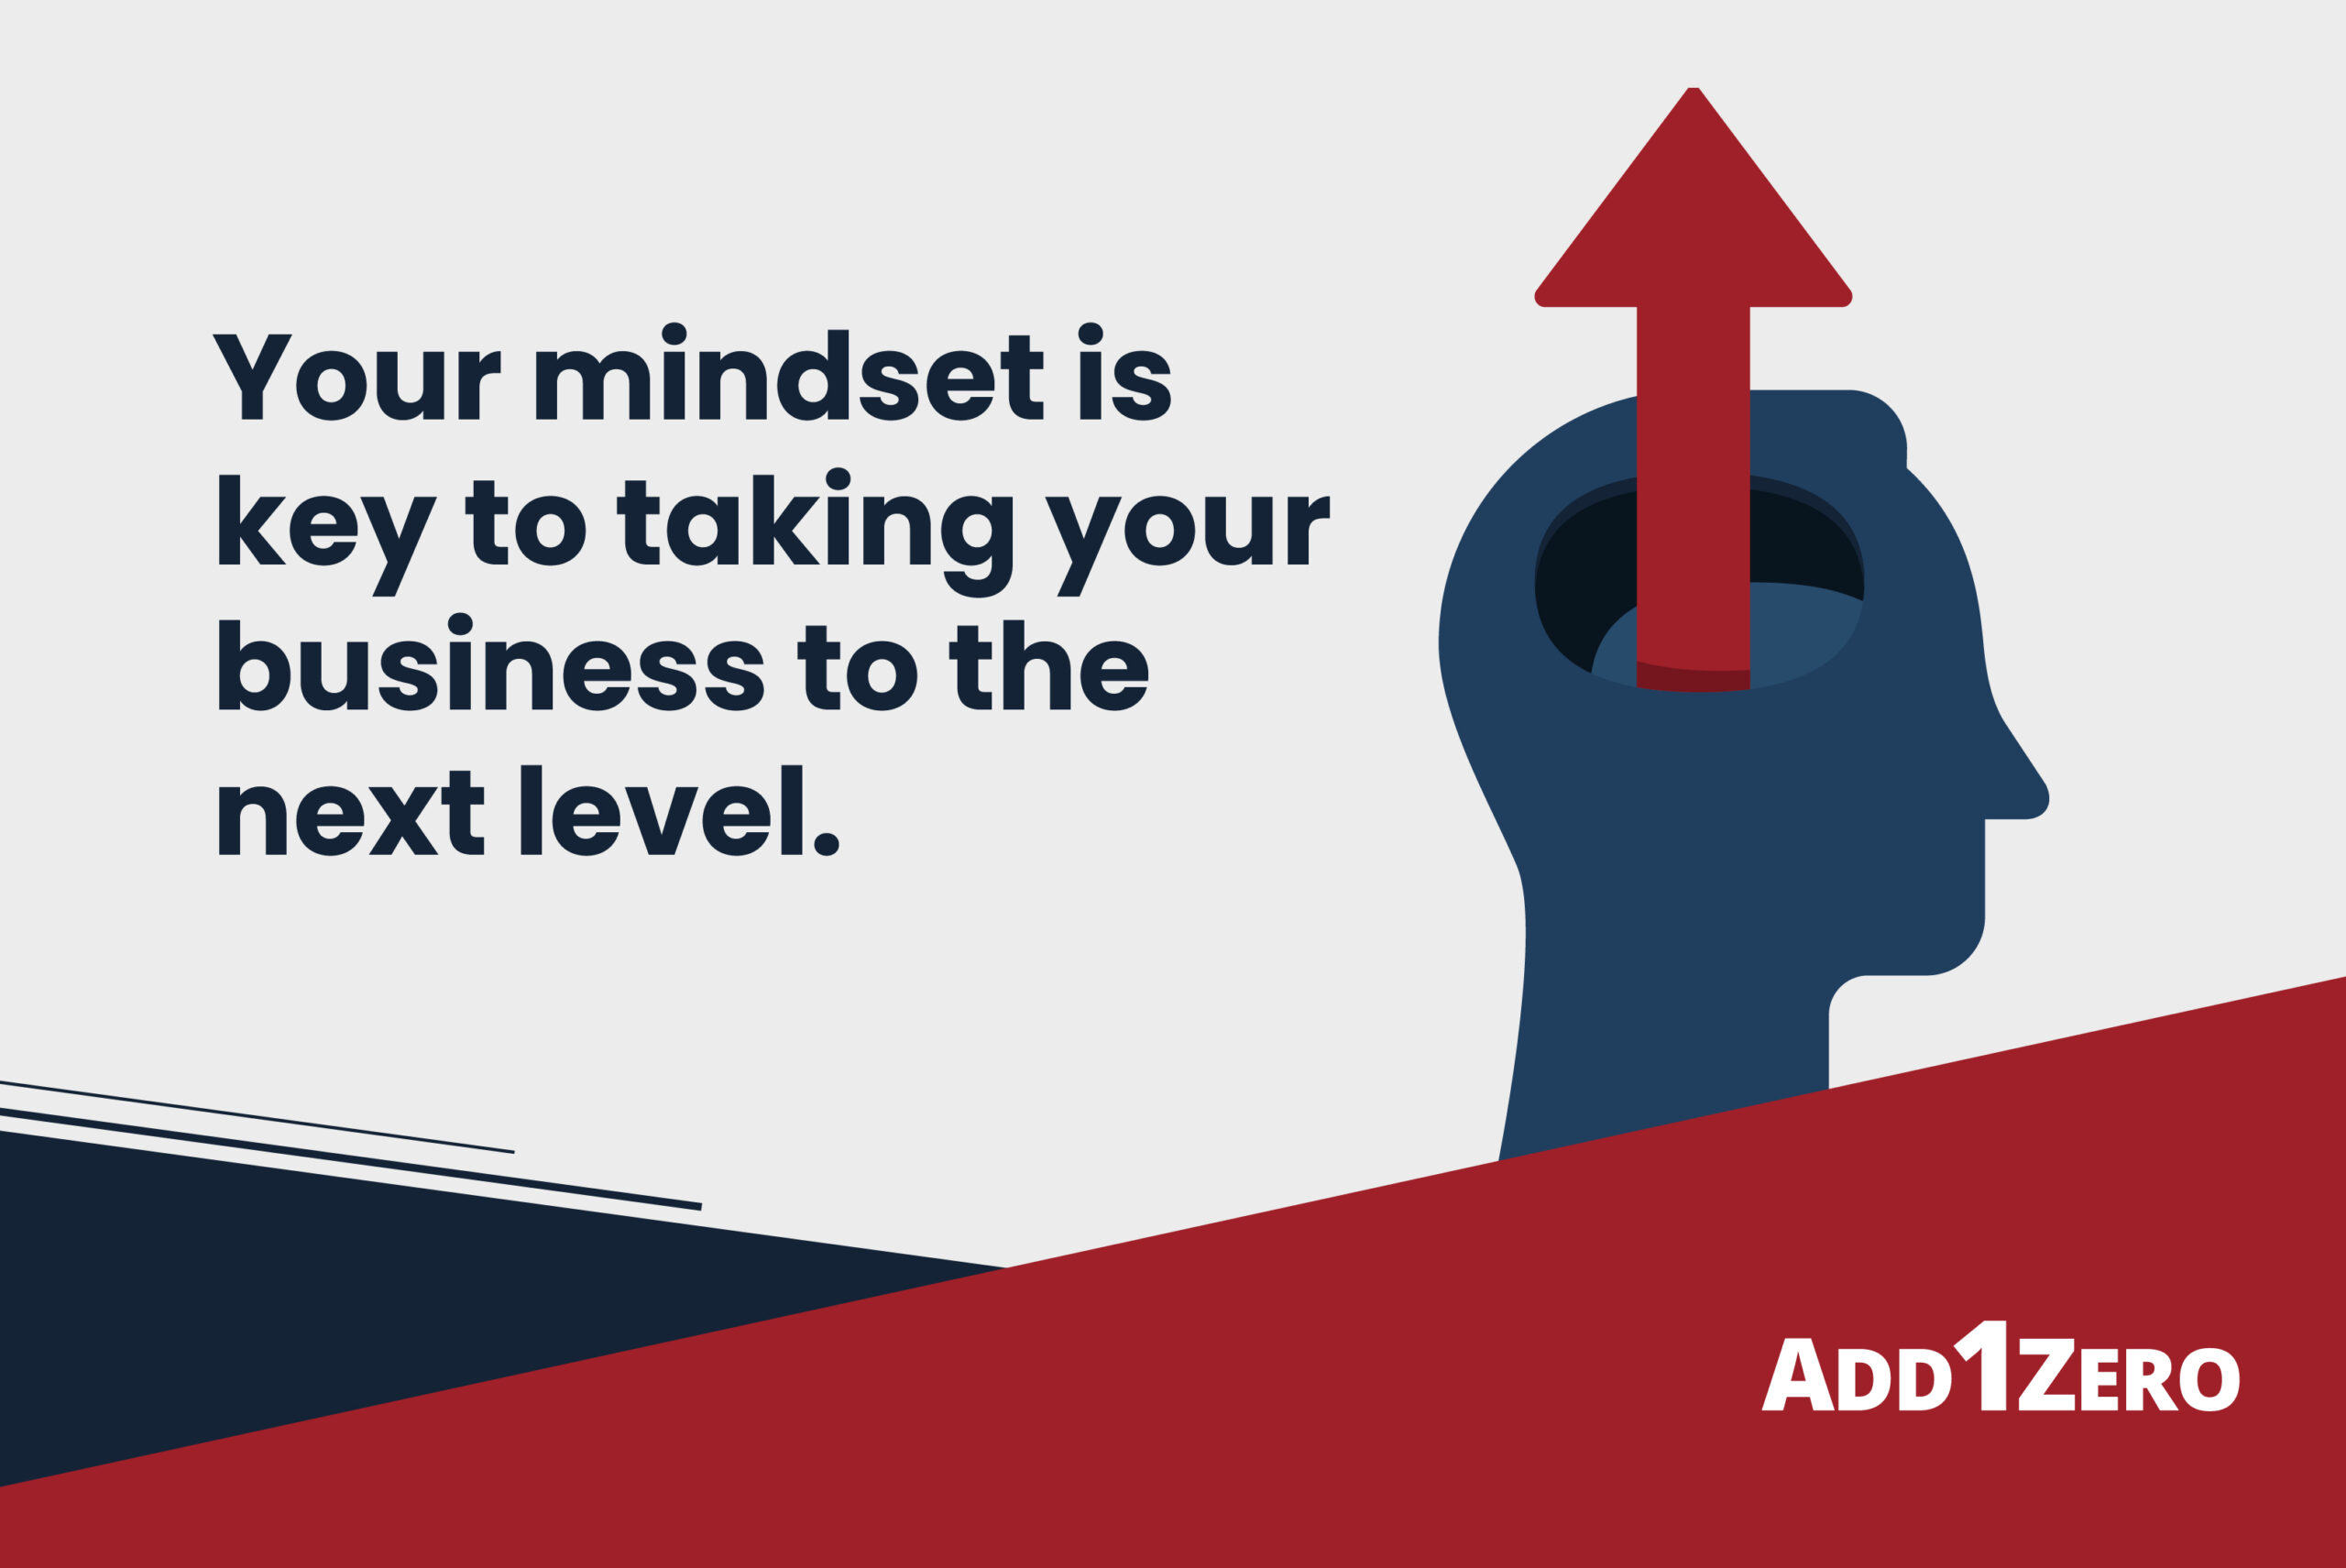 Your mindset is key to taking your business to the next level